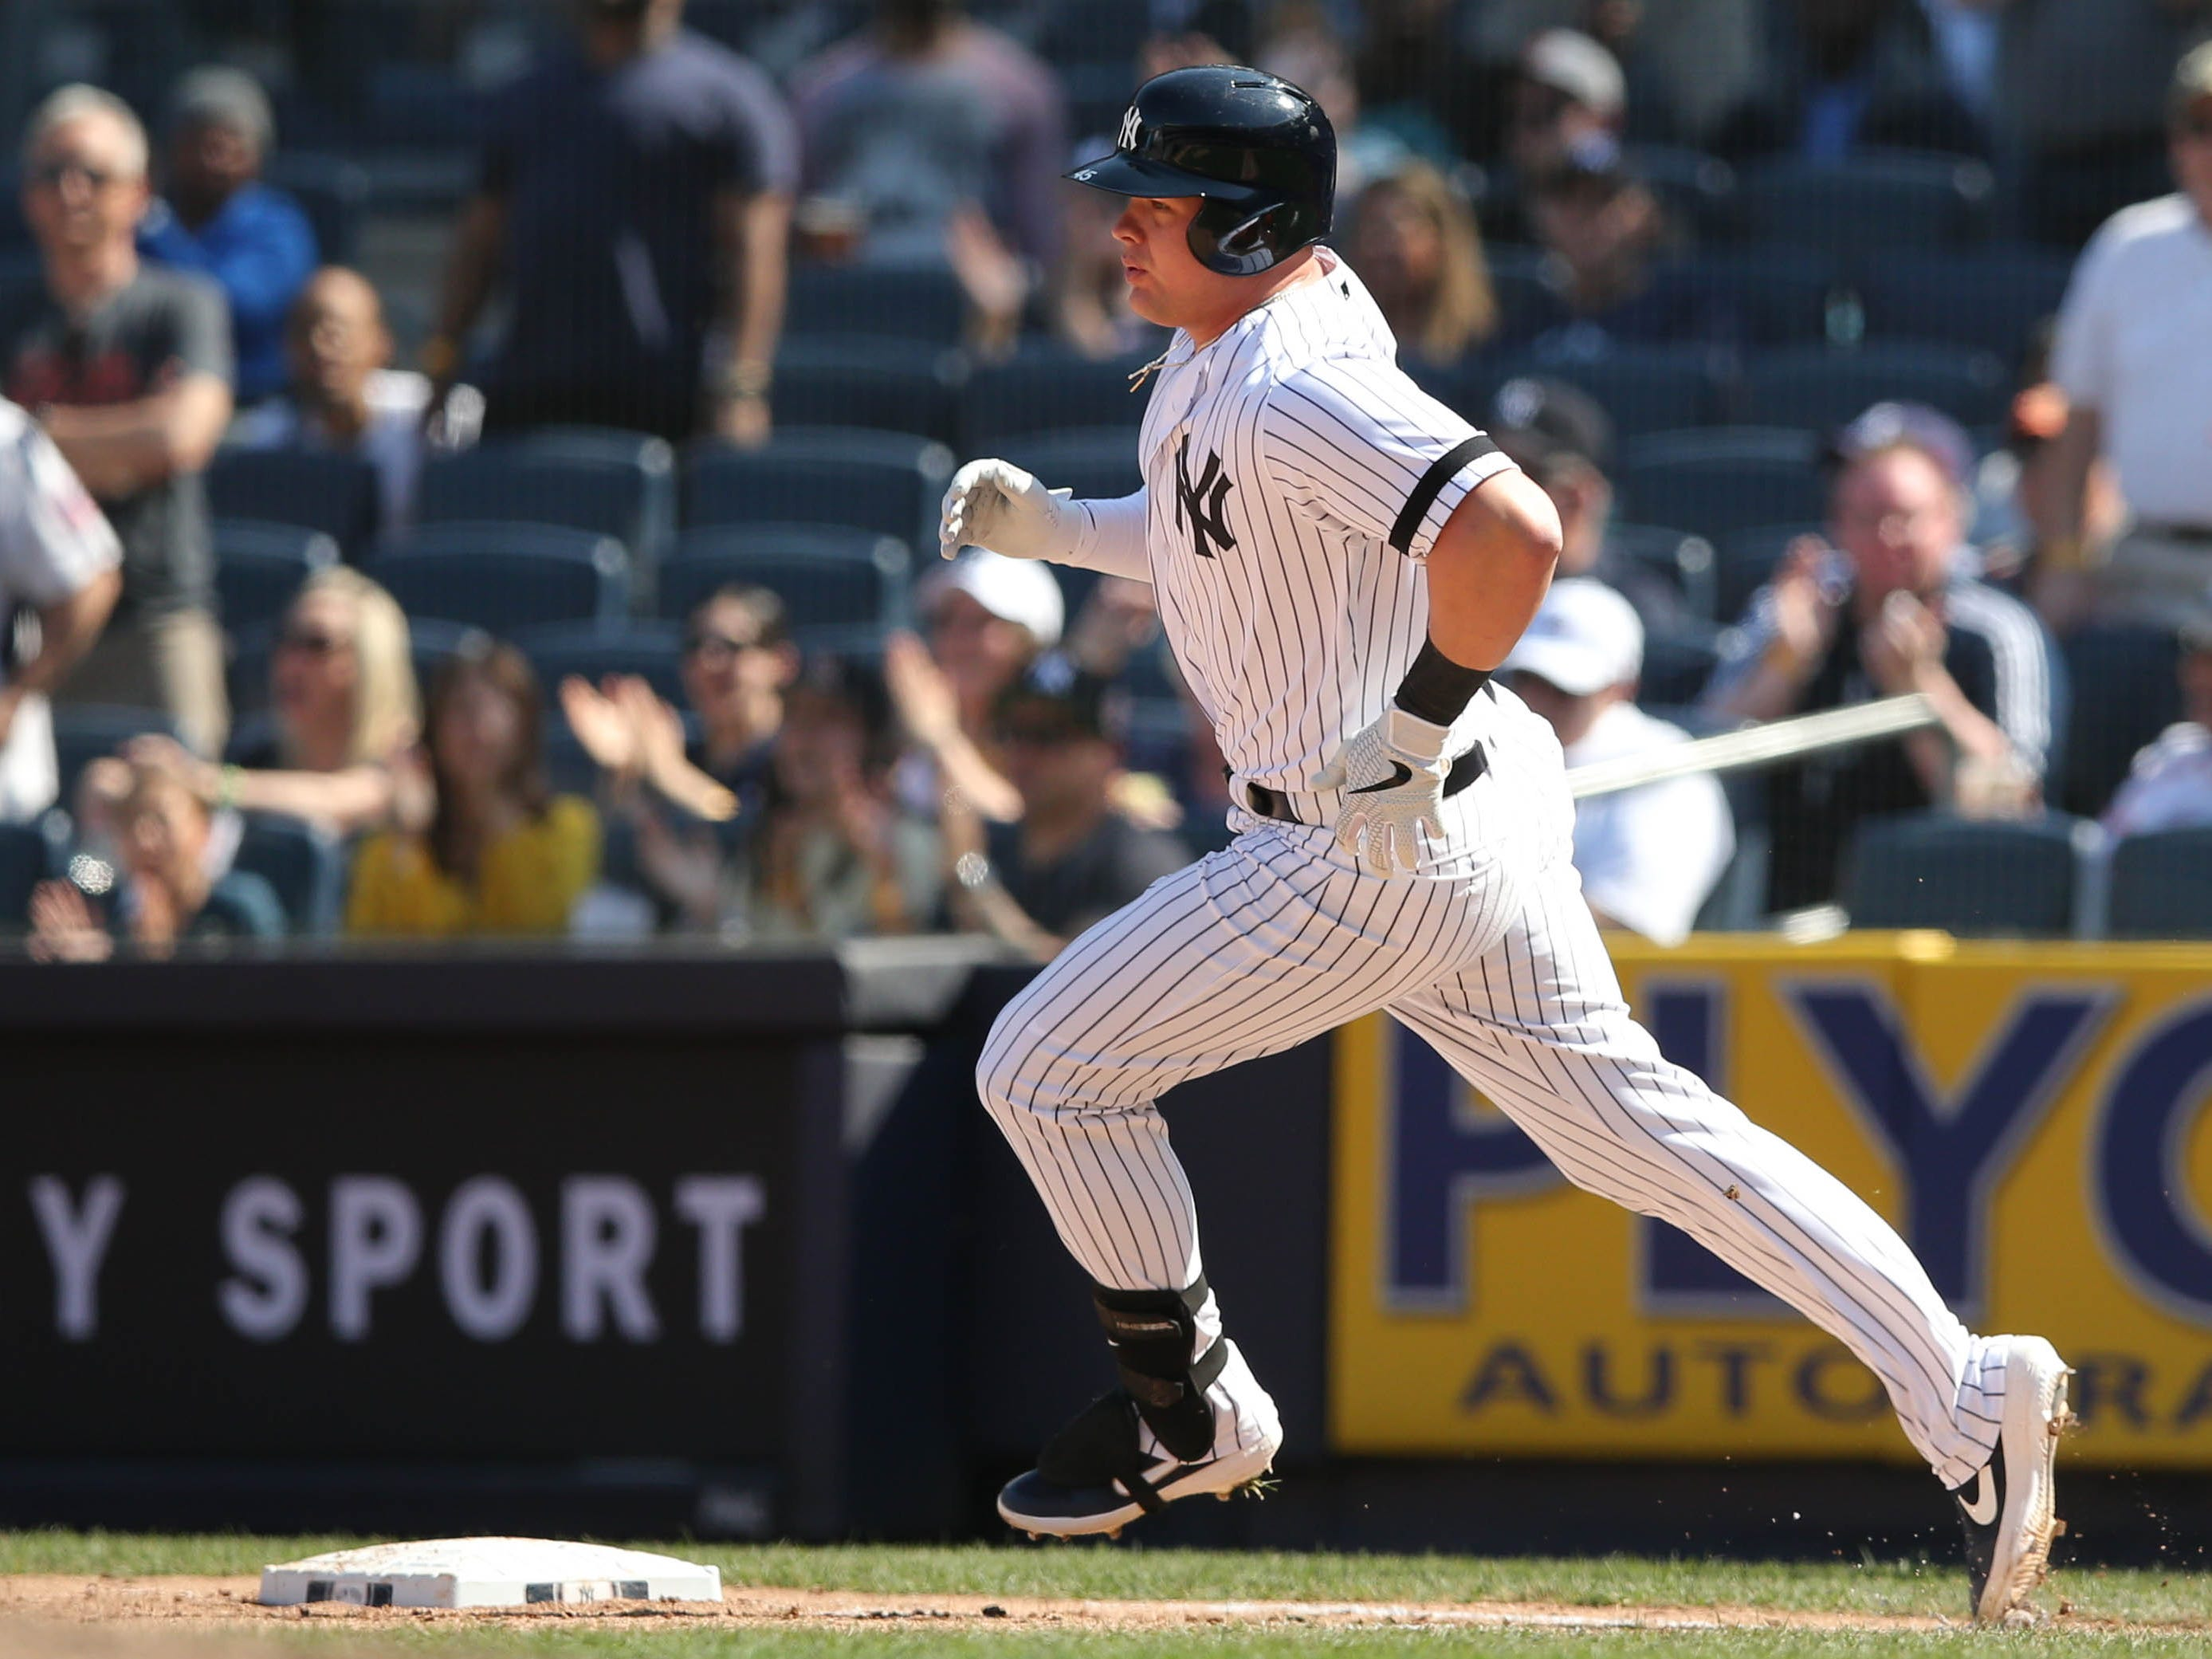 Apr 13, 2019; Bronx, NY, USA; New York Yankees first baseman Luke Voit (45) takes a wide turn at first after hitting an RBI single against the Chicago White Sox during the seventh inning at Yankee Stadium.